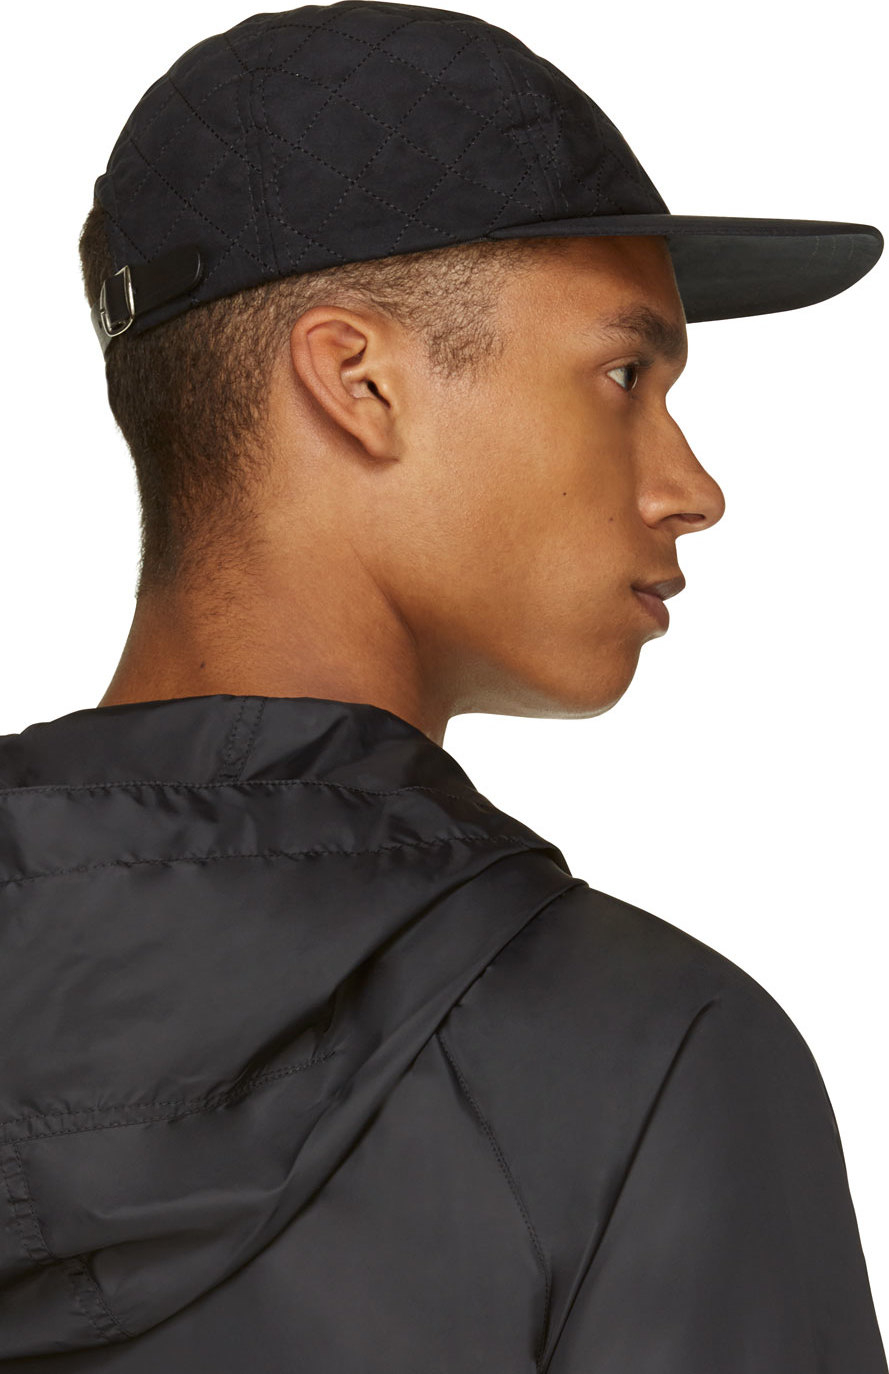 Lyst - A.P.C. Black Quilted Cap in Black for Men 98b1f495bb8